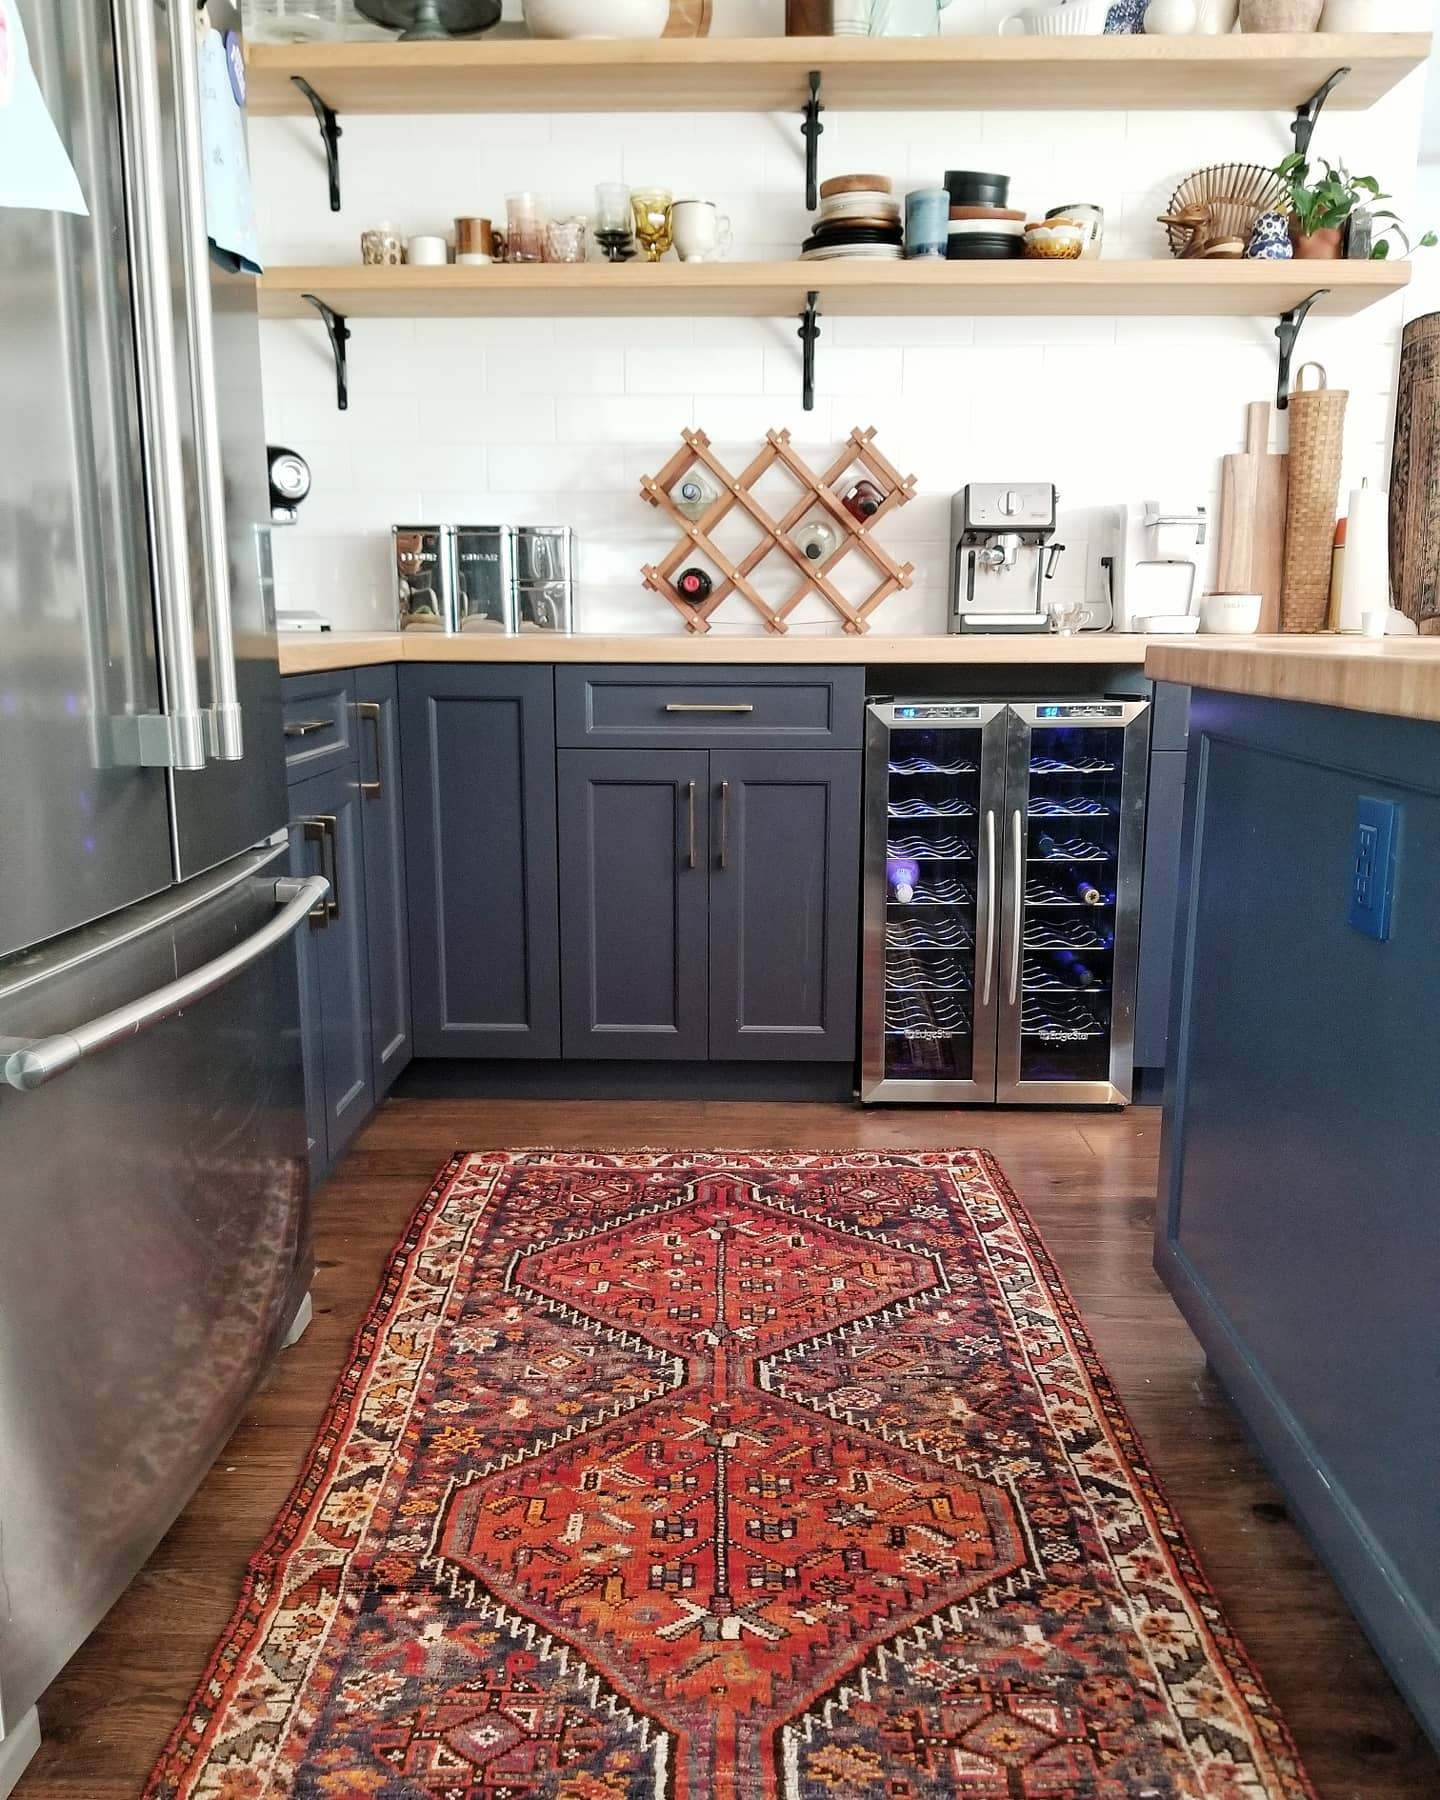 Cabinet Apartment Kitchen Ideas -theknotted_fox